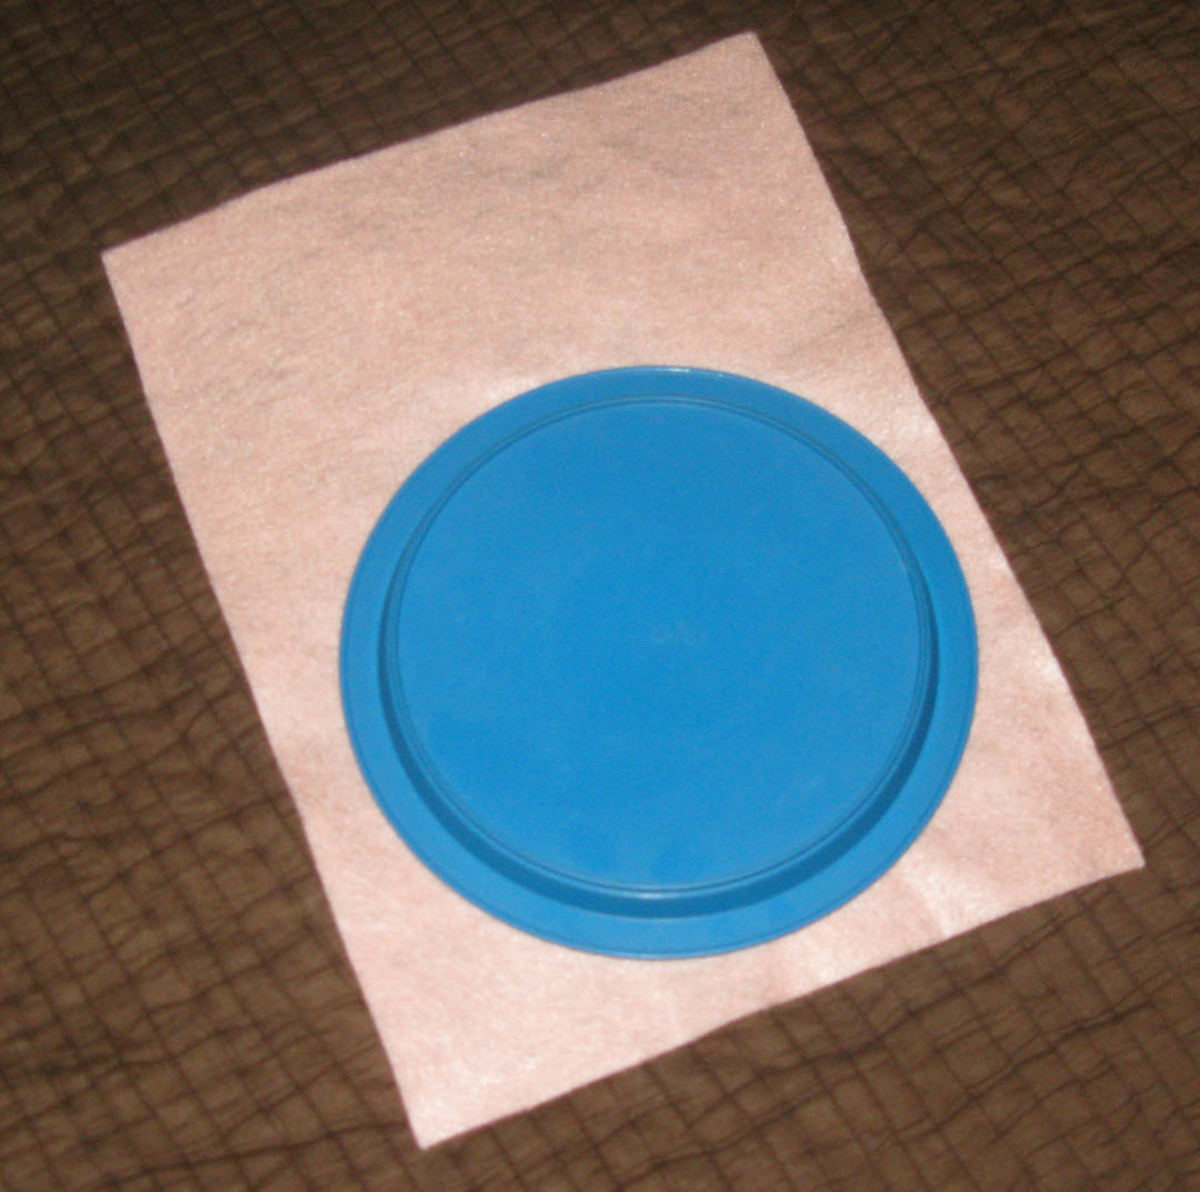 Use the plate as a template to trace and cut a circle from the pink felt.